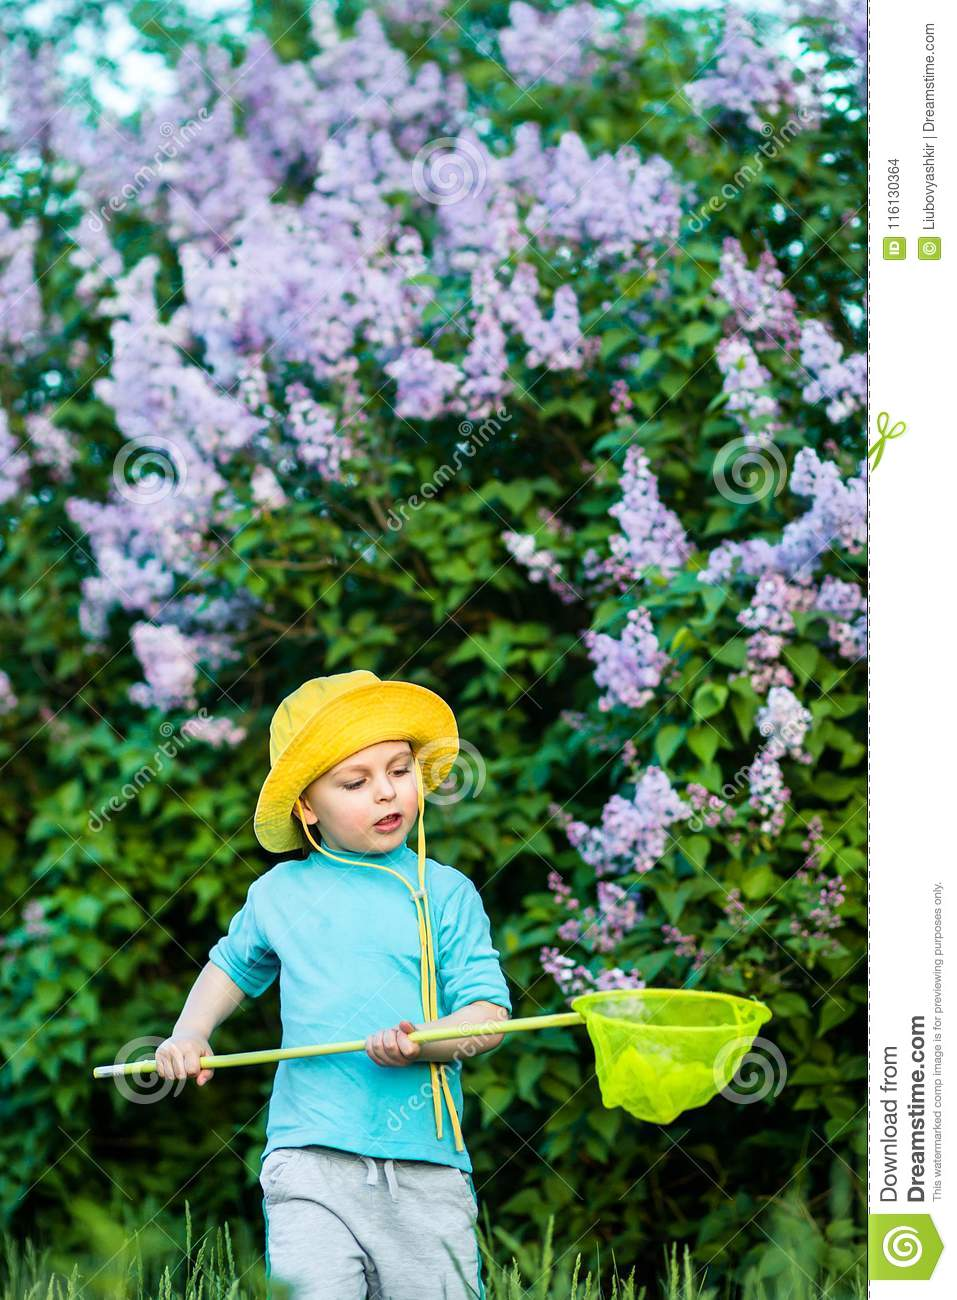 A charming kid playing with a scoop on a meadow in a warm and sunny summer or spring day.